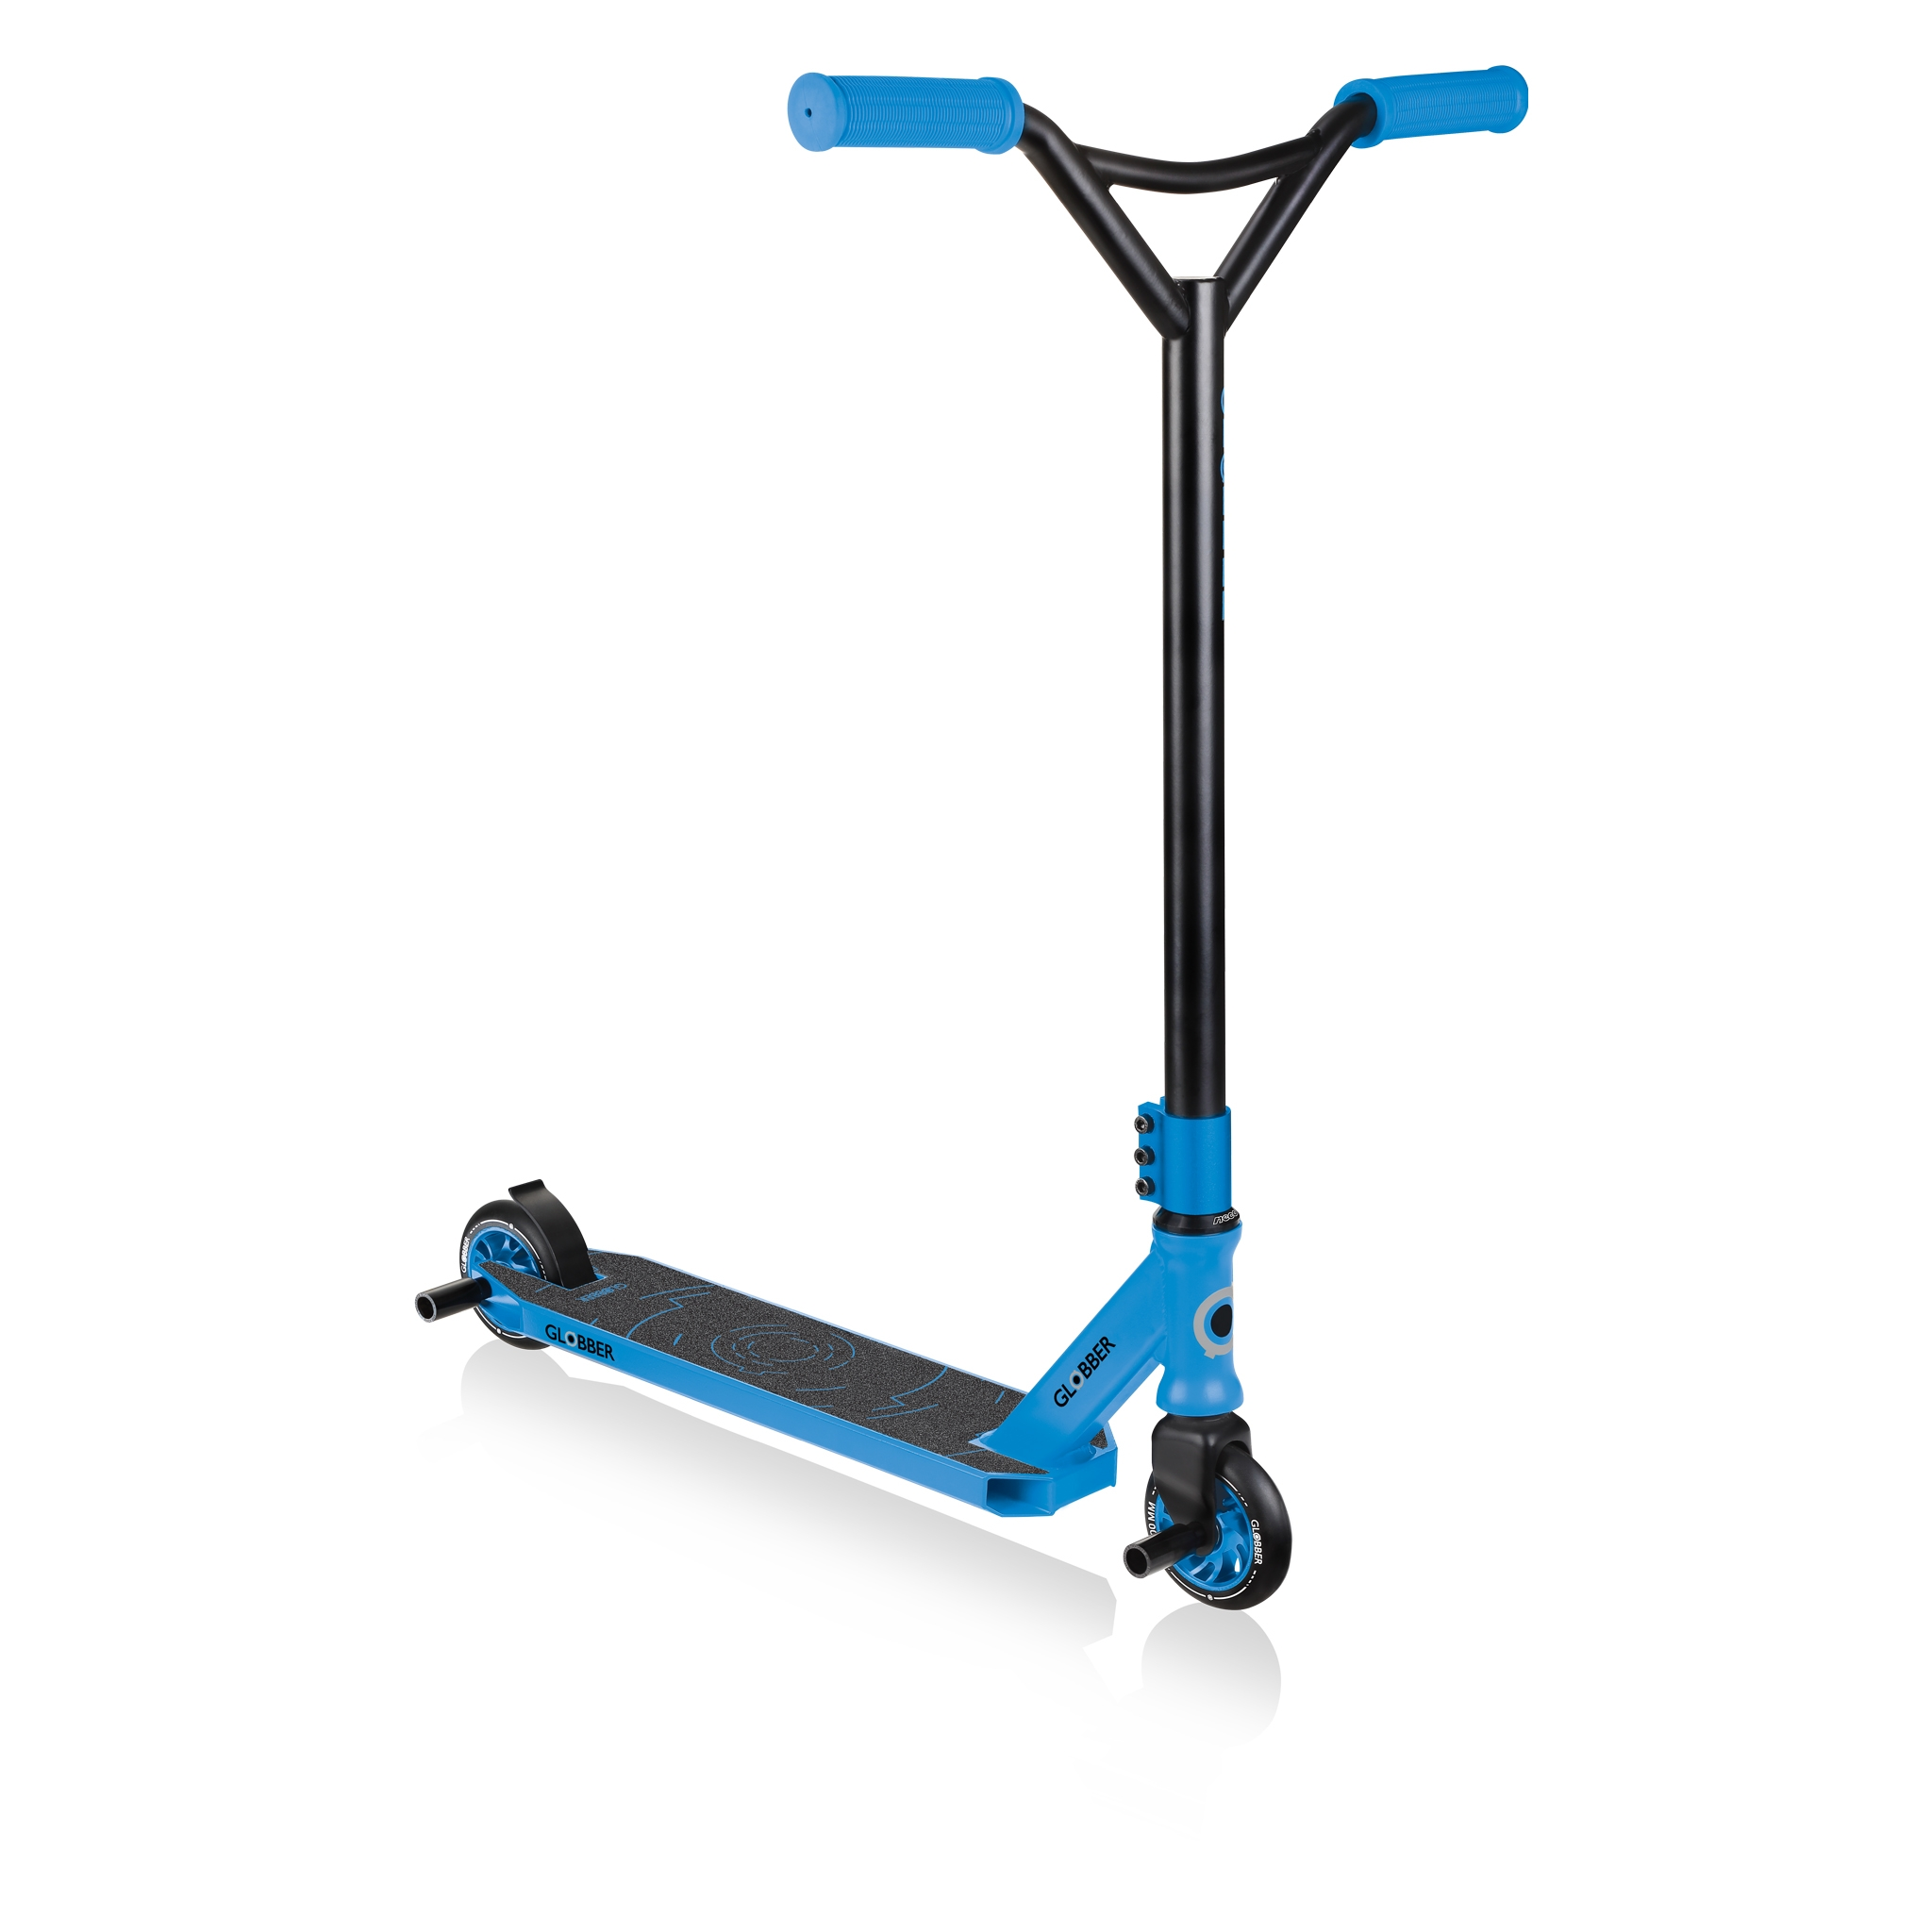 stunt scooter for kids and teens aged 8+ with pegs - Globber GS 540 0